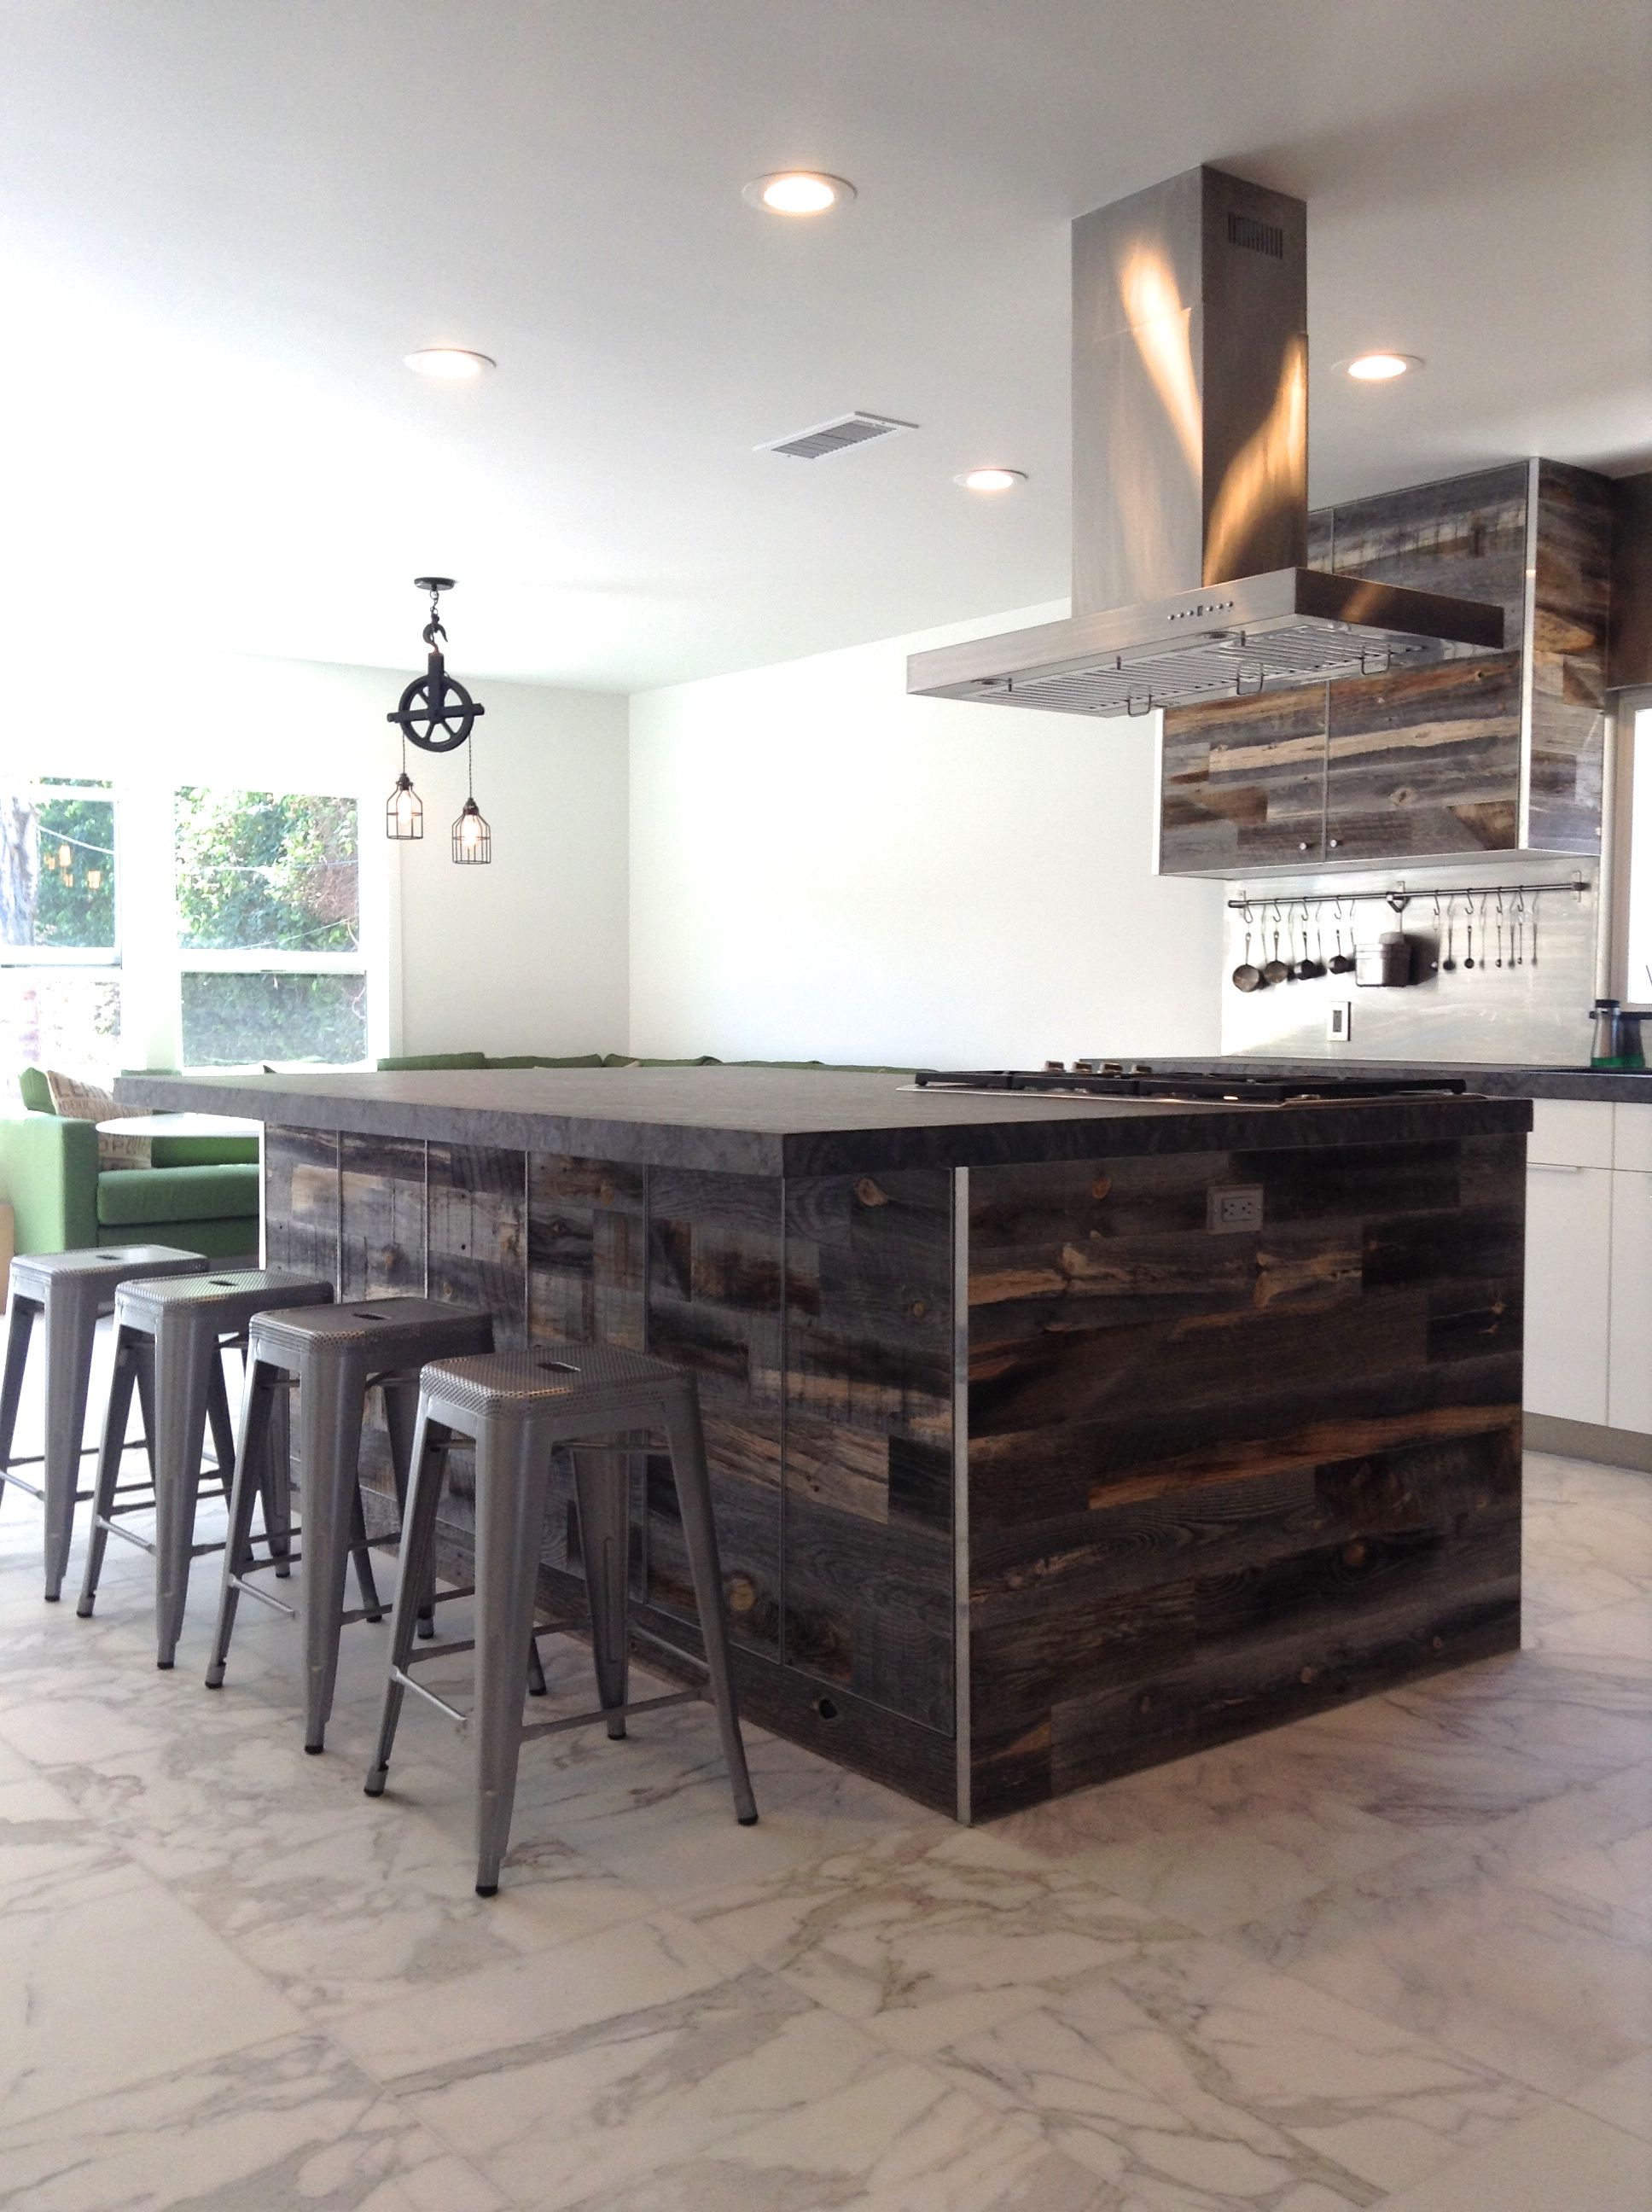 Kitchen Ikeahack With Reclaimed Weathered Wood